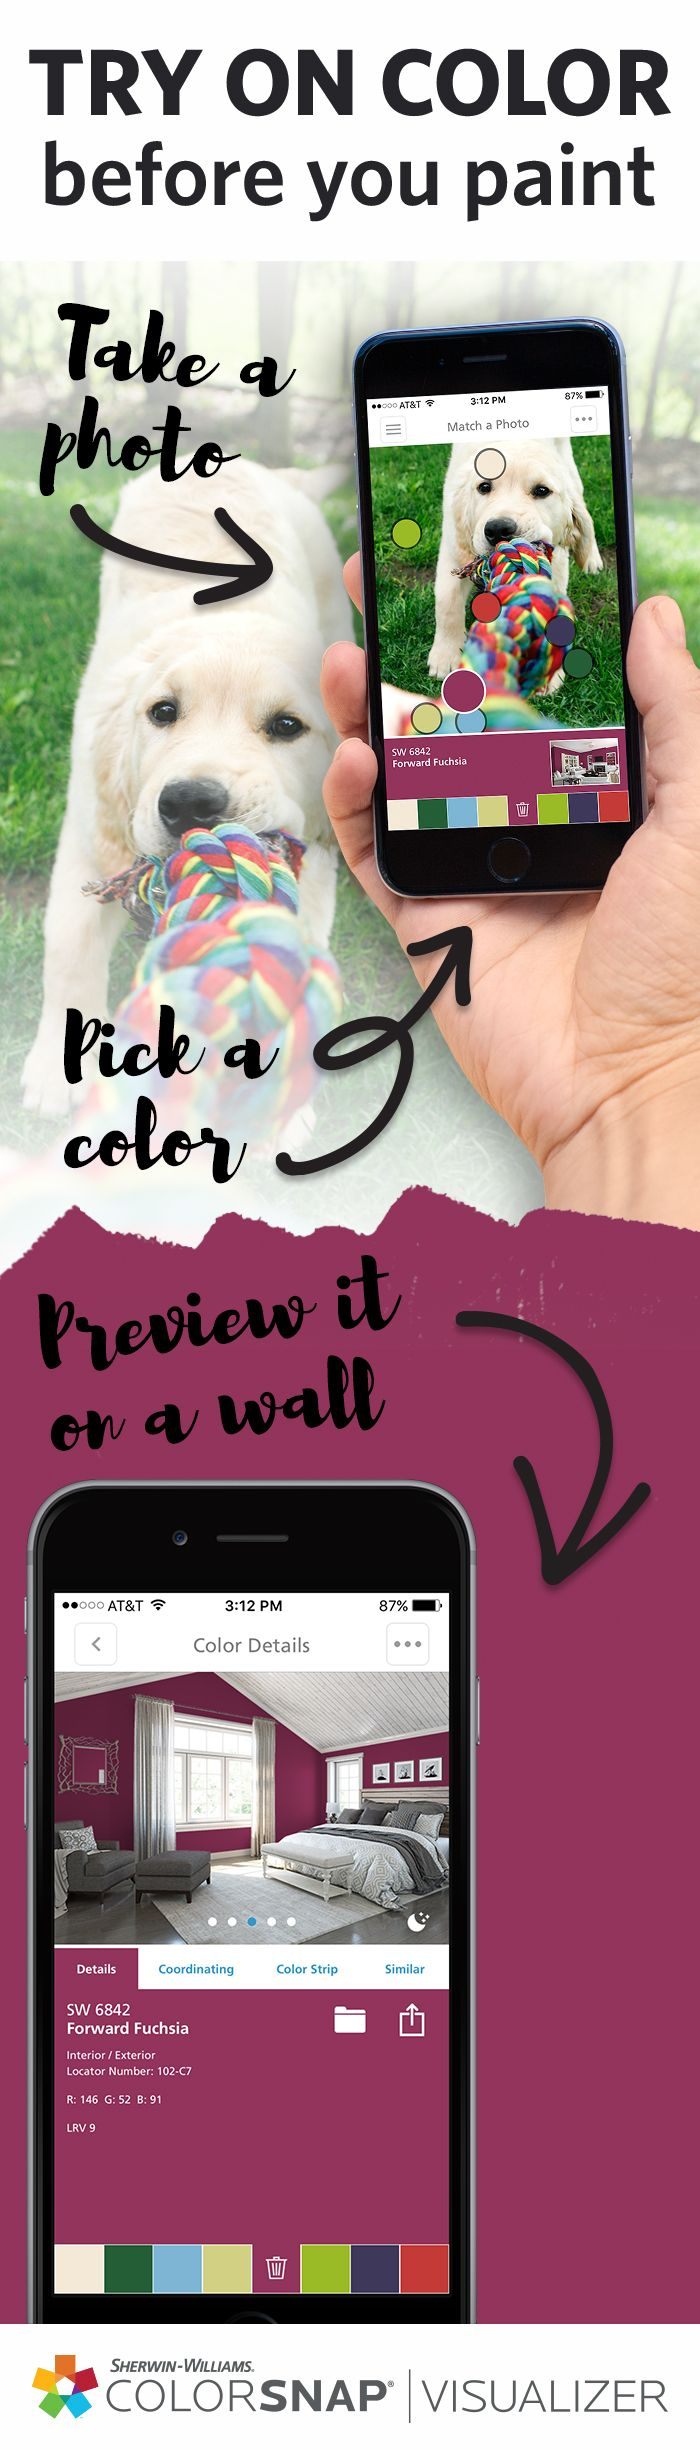 Your next paint color might be right in front of your nose. ColorSnap® Visualizer for iPhone & Android lets you capture colors from any photo and try them out in one of our room scenes. Once you've picked your favorites, simply visit any Sherwin-Williams store, launch the app, point it at our color wall and rotate the phone horizontally to locate the corresponding chips. Download ColorSnap® Visualizer to get started.